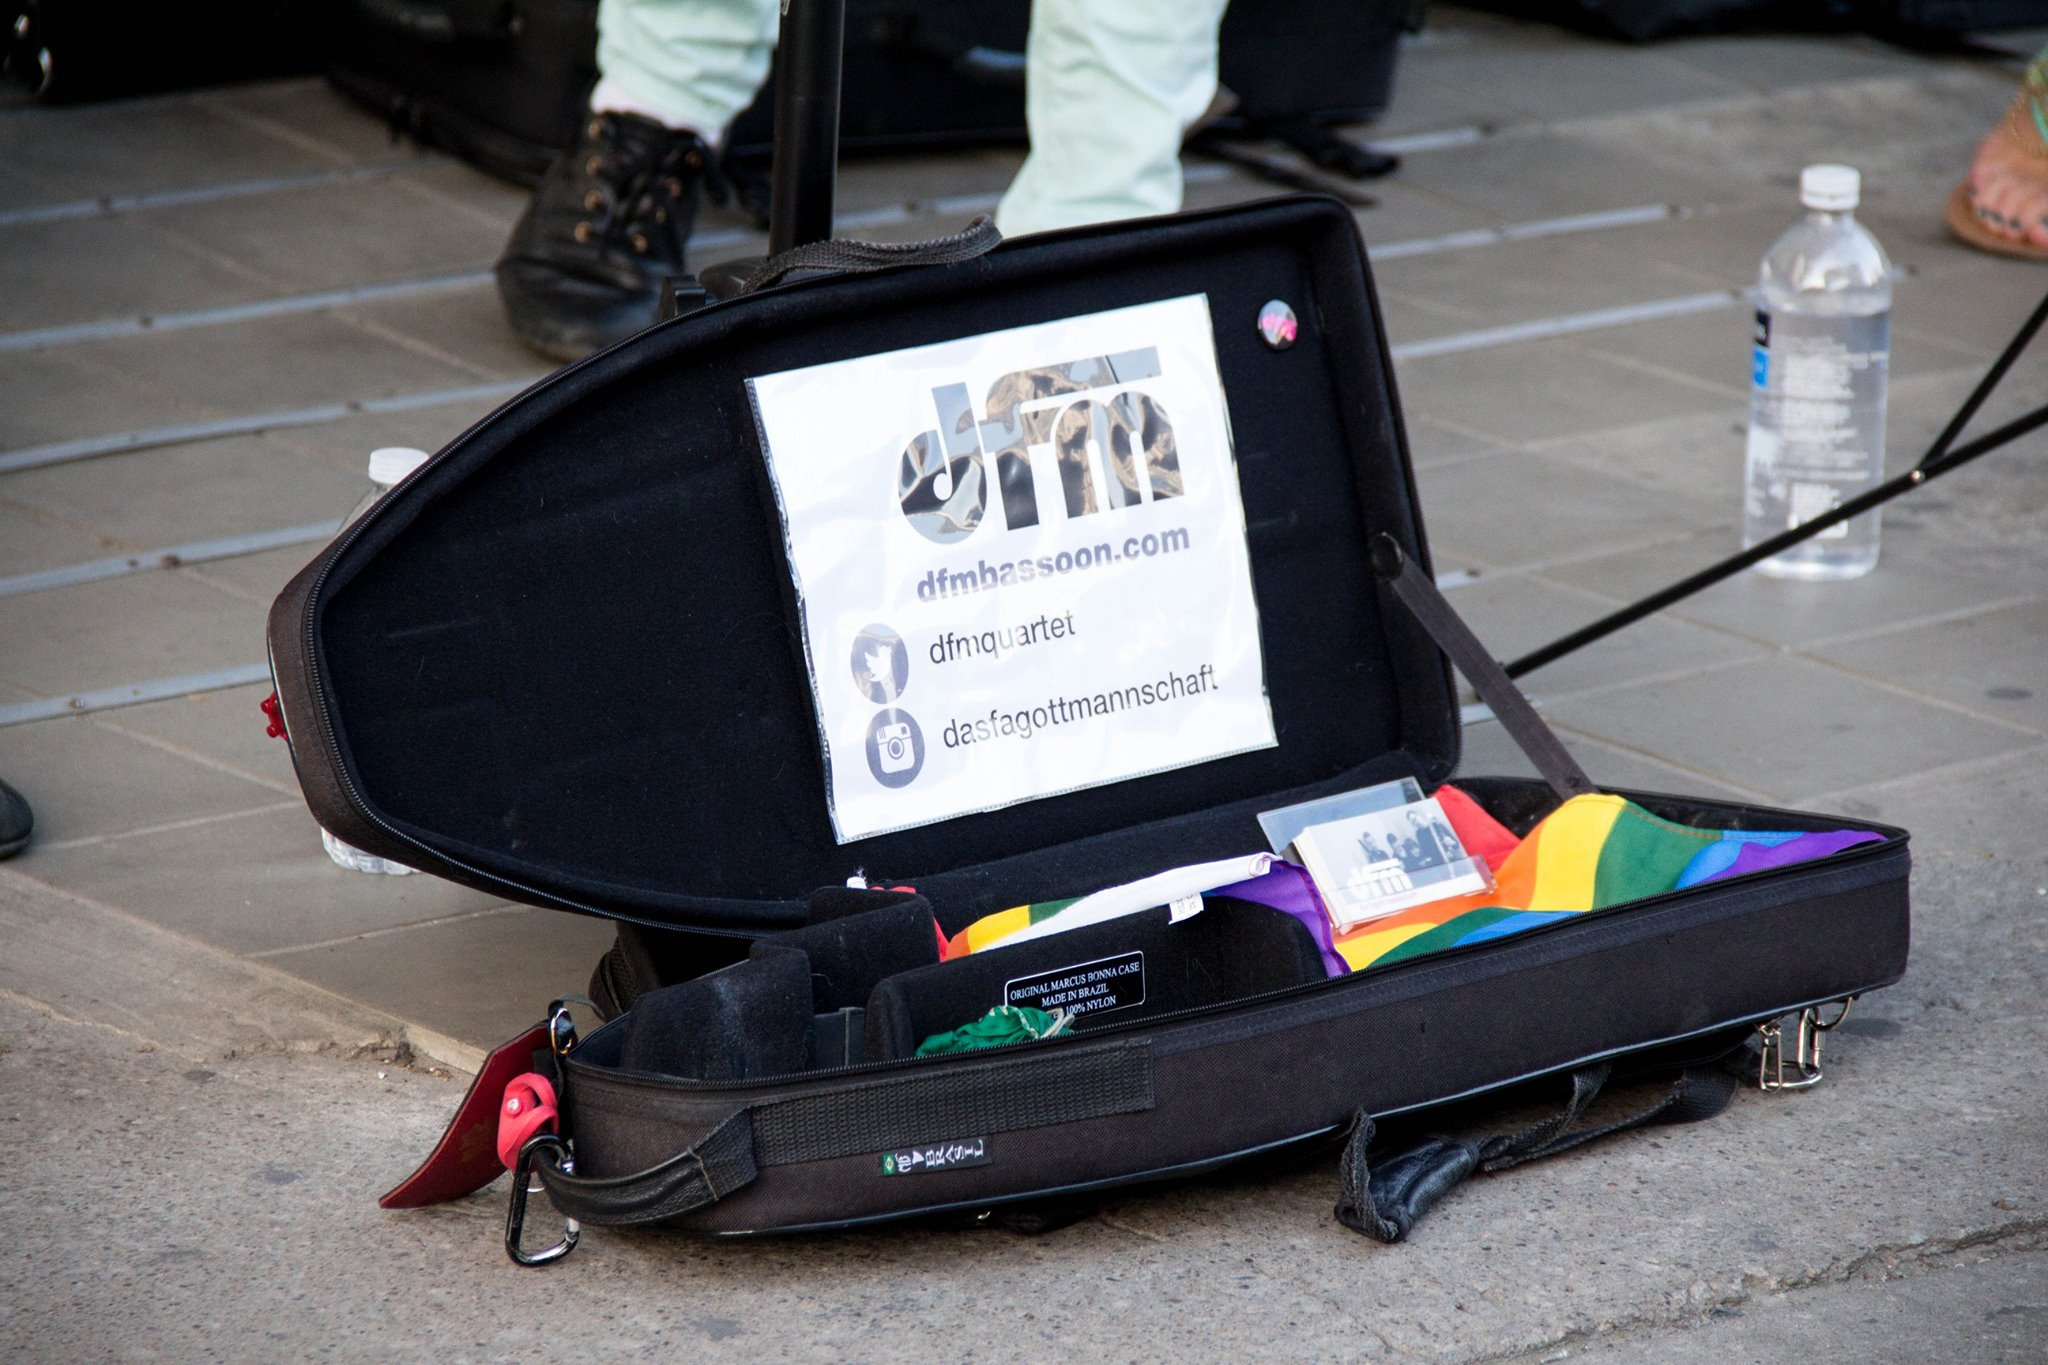 Our festive busking case for World Pride 2014. Photo by Terry Lim.